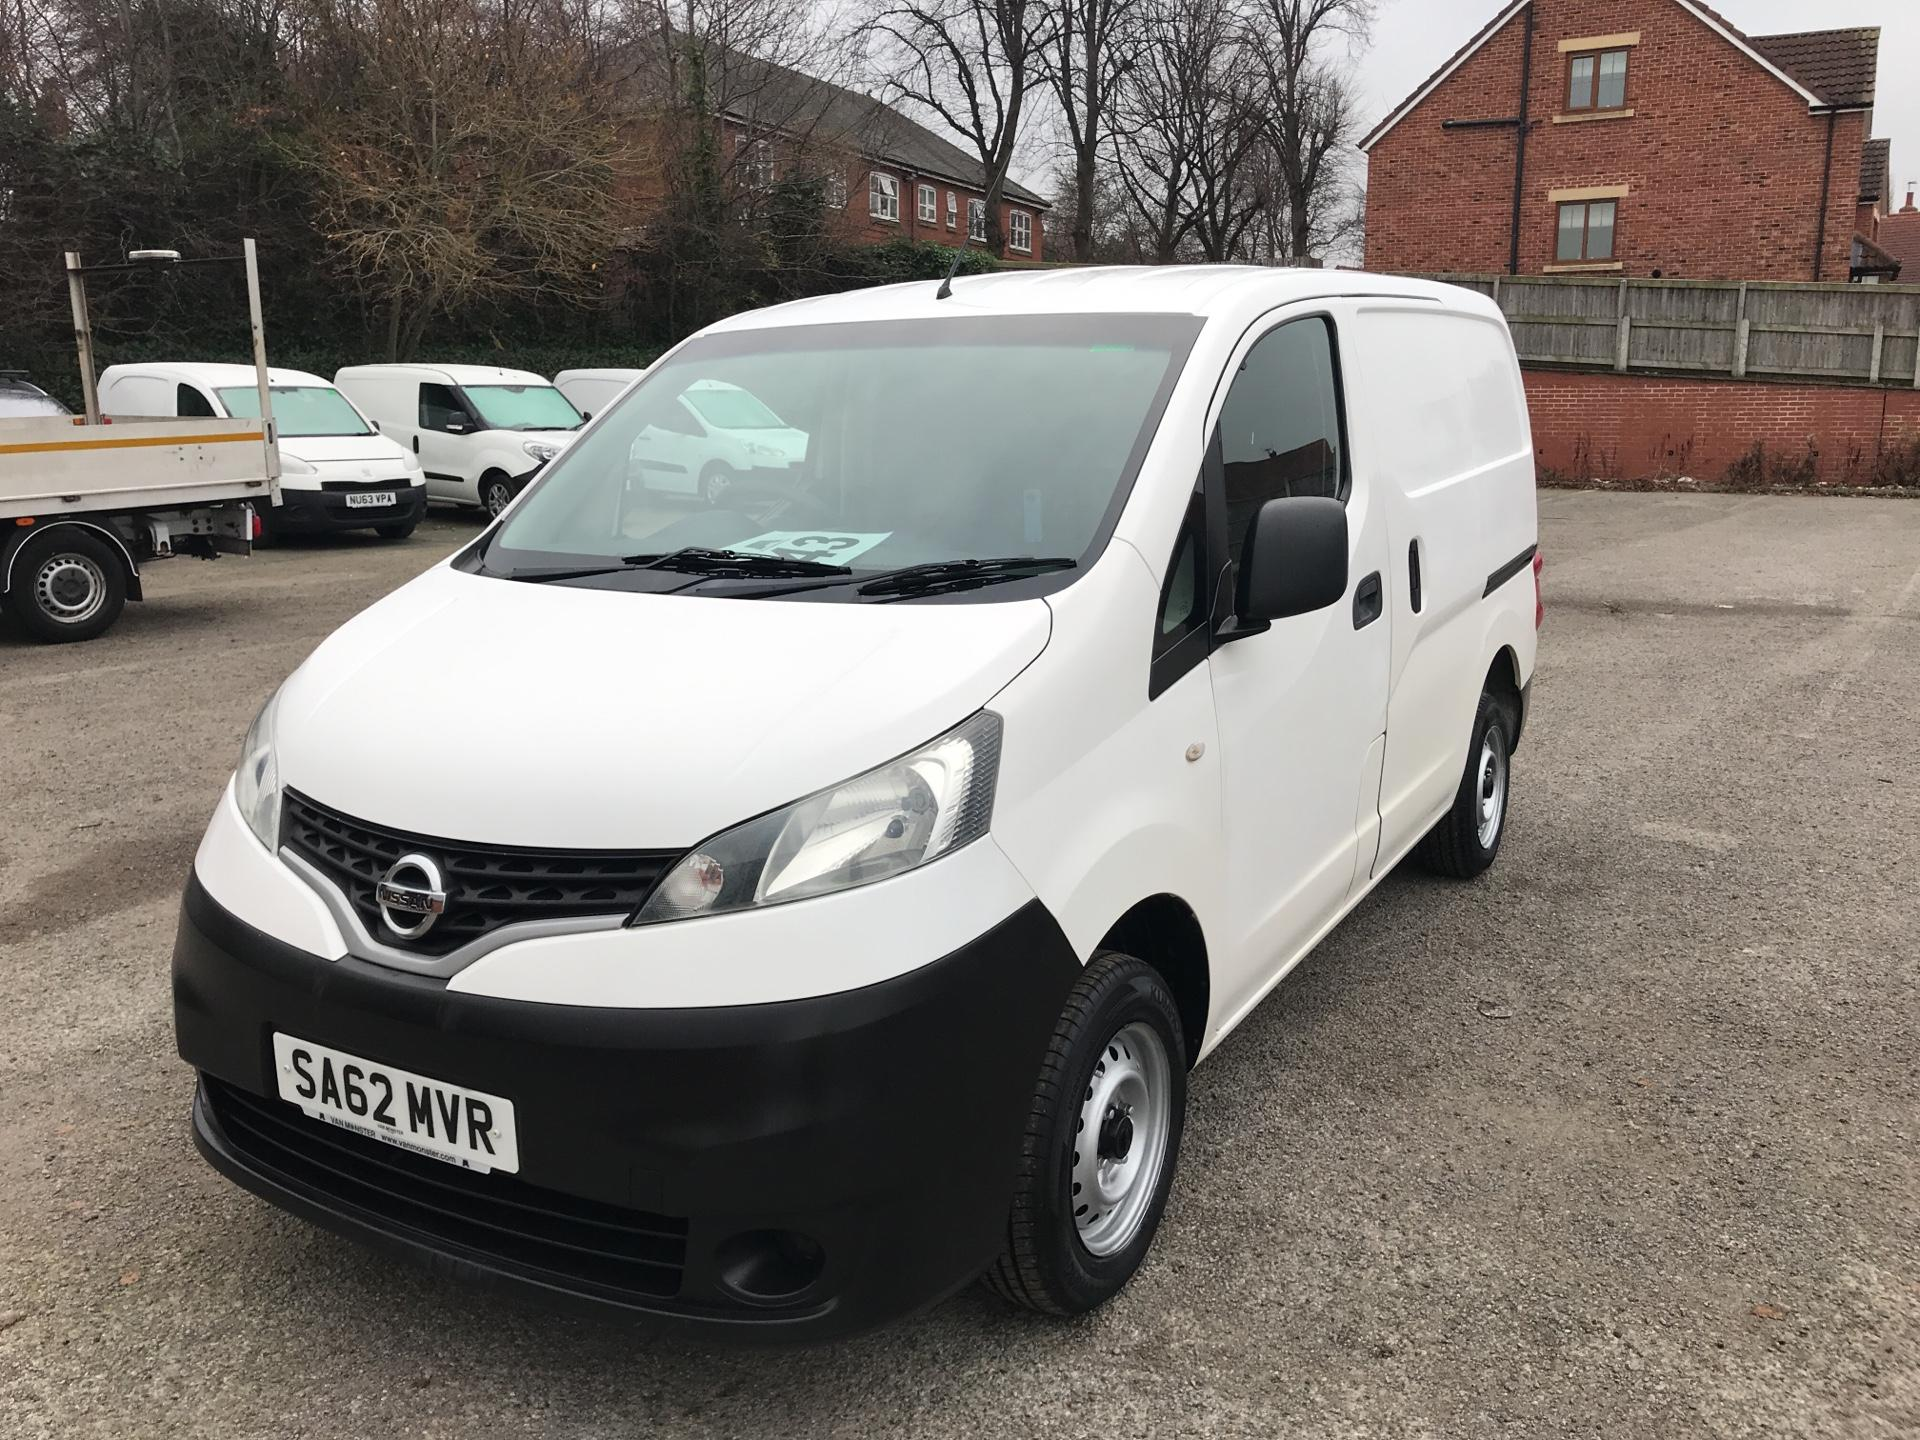 2012 Nissan Nv200 1.5 Dci 89 Se Van EURO 5 -*VALUE RANGE VEHICLE - CONDITION REFLECTED IN PRICE* (SA62MVR) Image 7